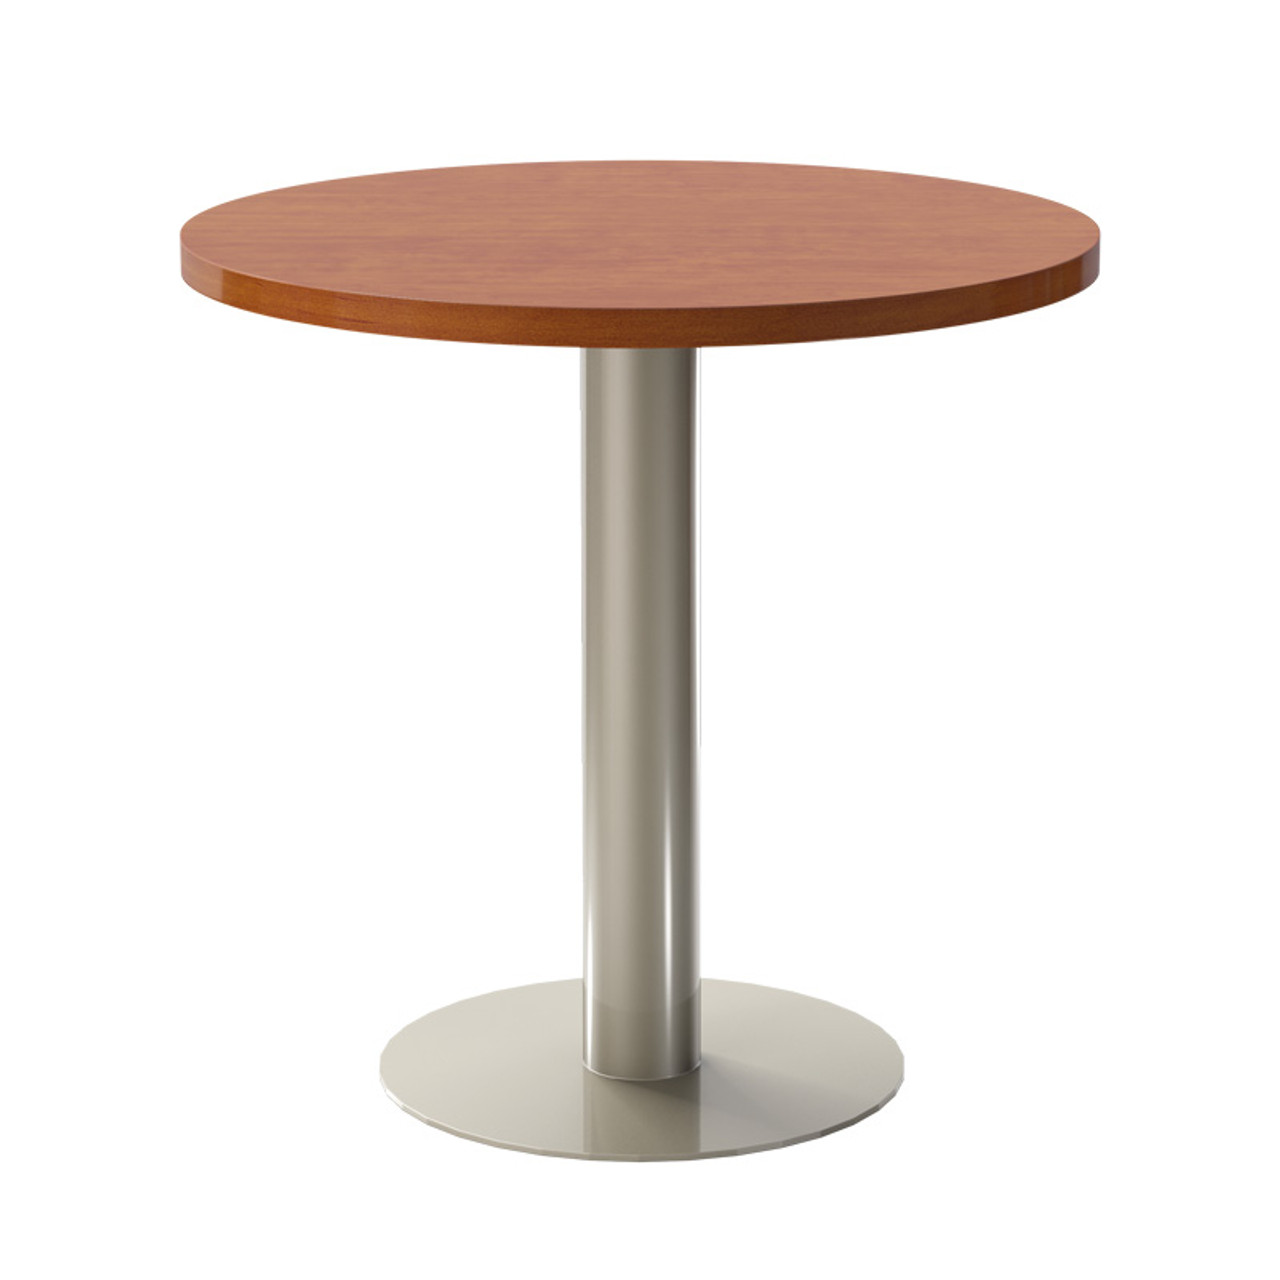 "Round Pedestal Base, 27-3/4"" Height, 23-3/4"" Base Diameter, 4"" diameter Column, with welded mounting plate, tabletop not included - Replacementtablelegs.com"